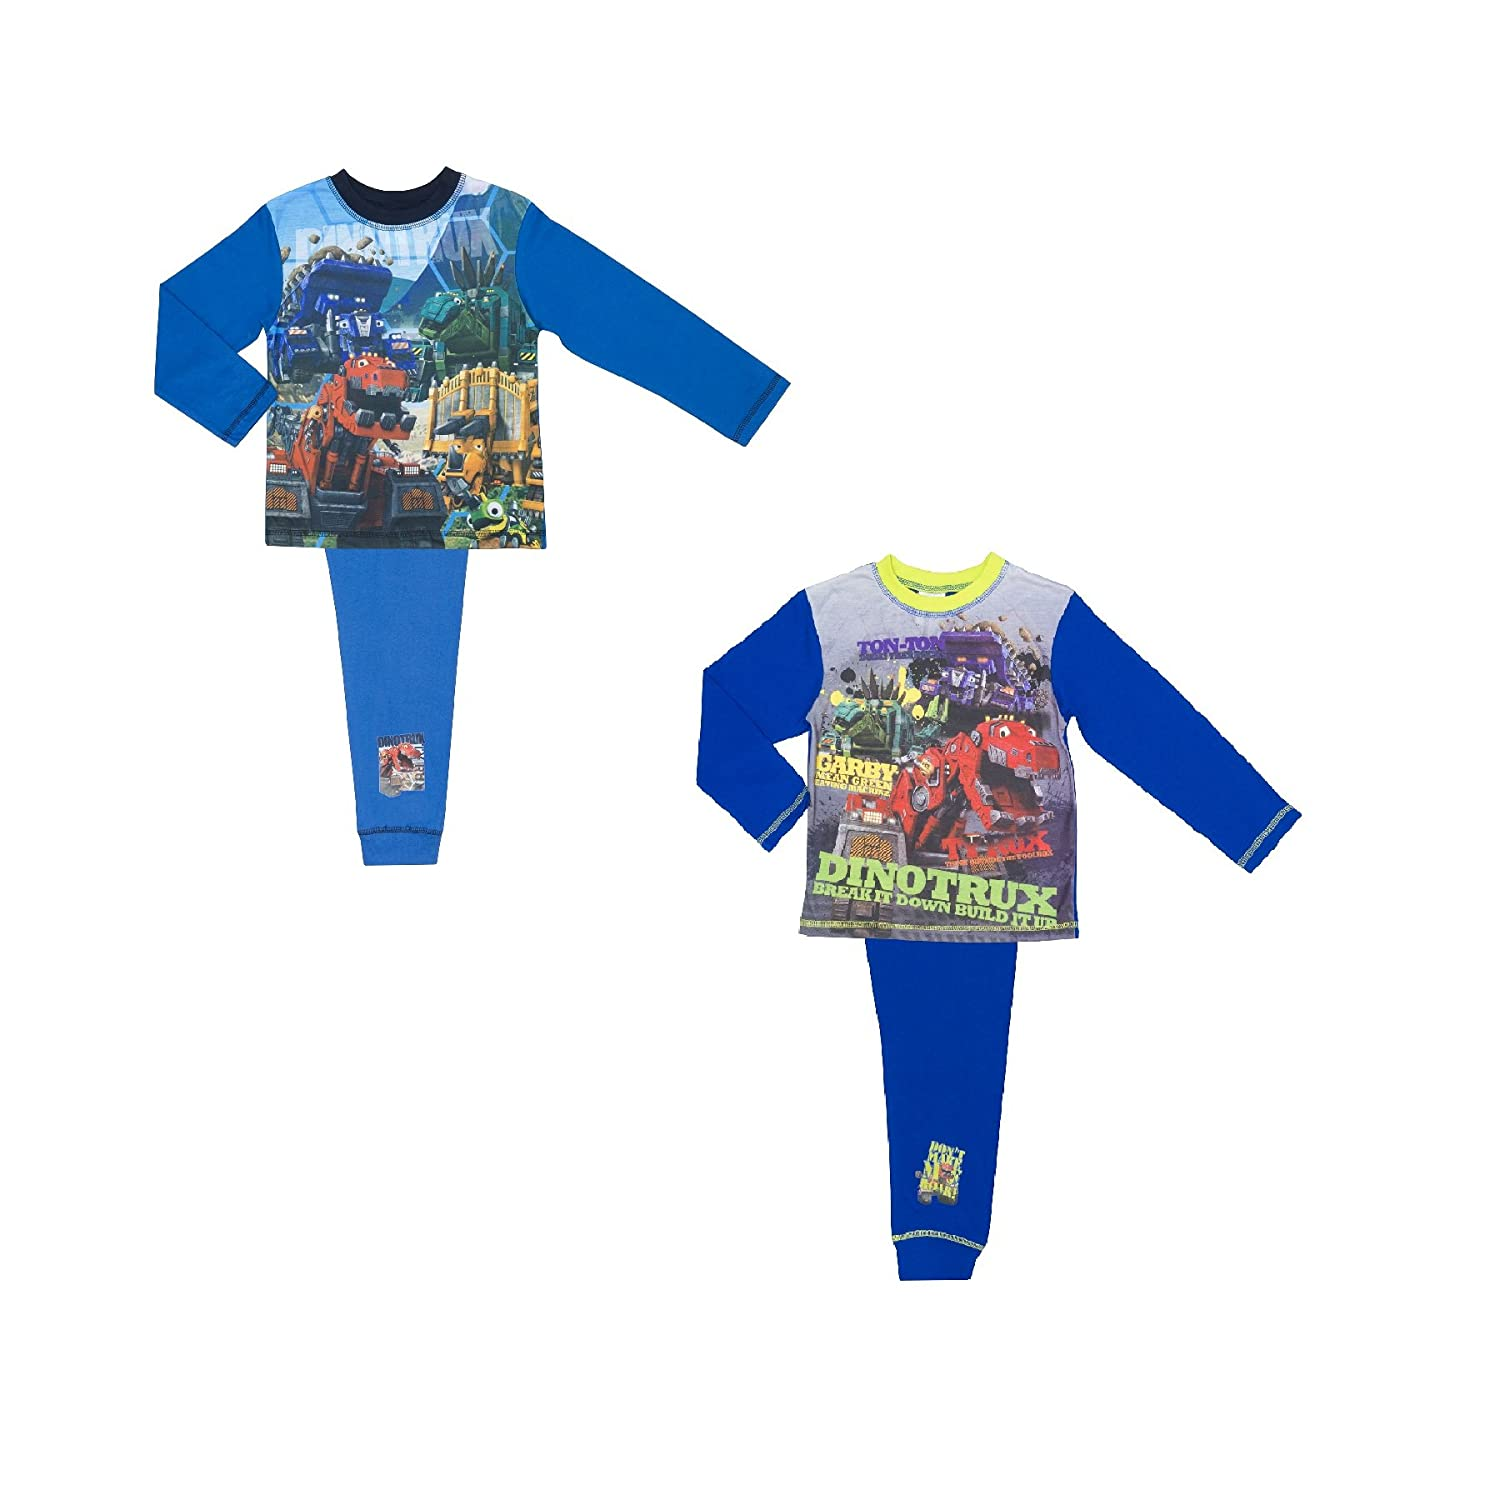 Cartoon Character Products 2 Pack DreamWorks Dinotrux Boys Pyjamas Size 4-10 Years